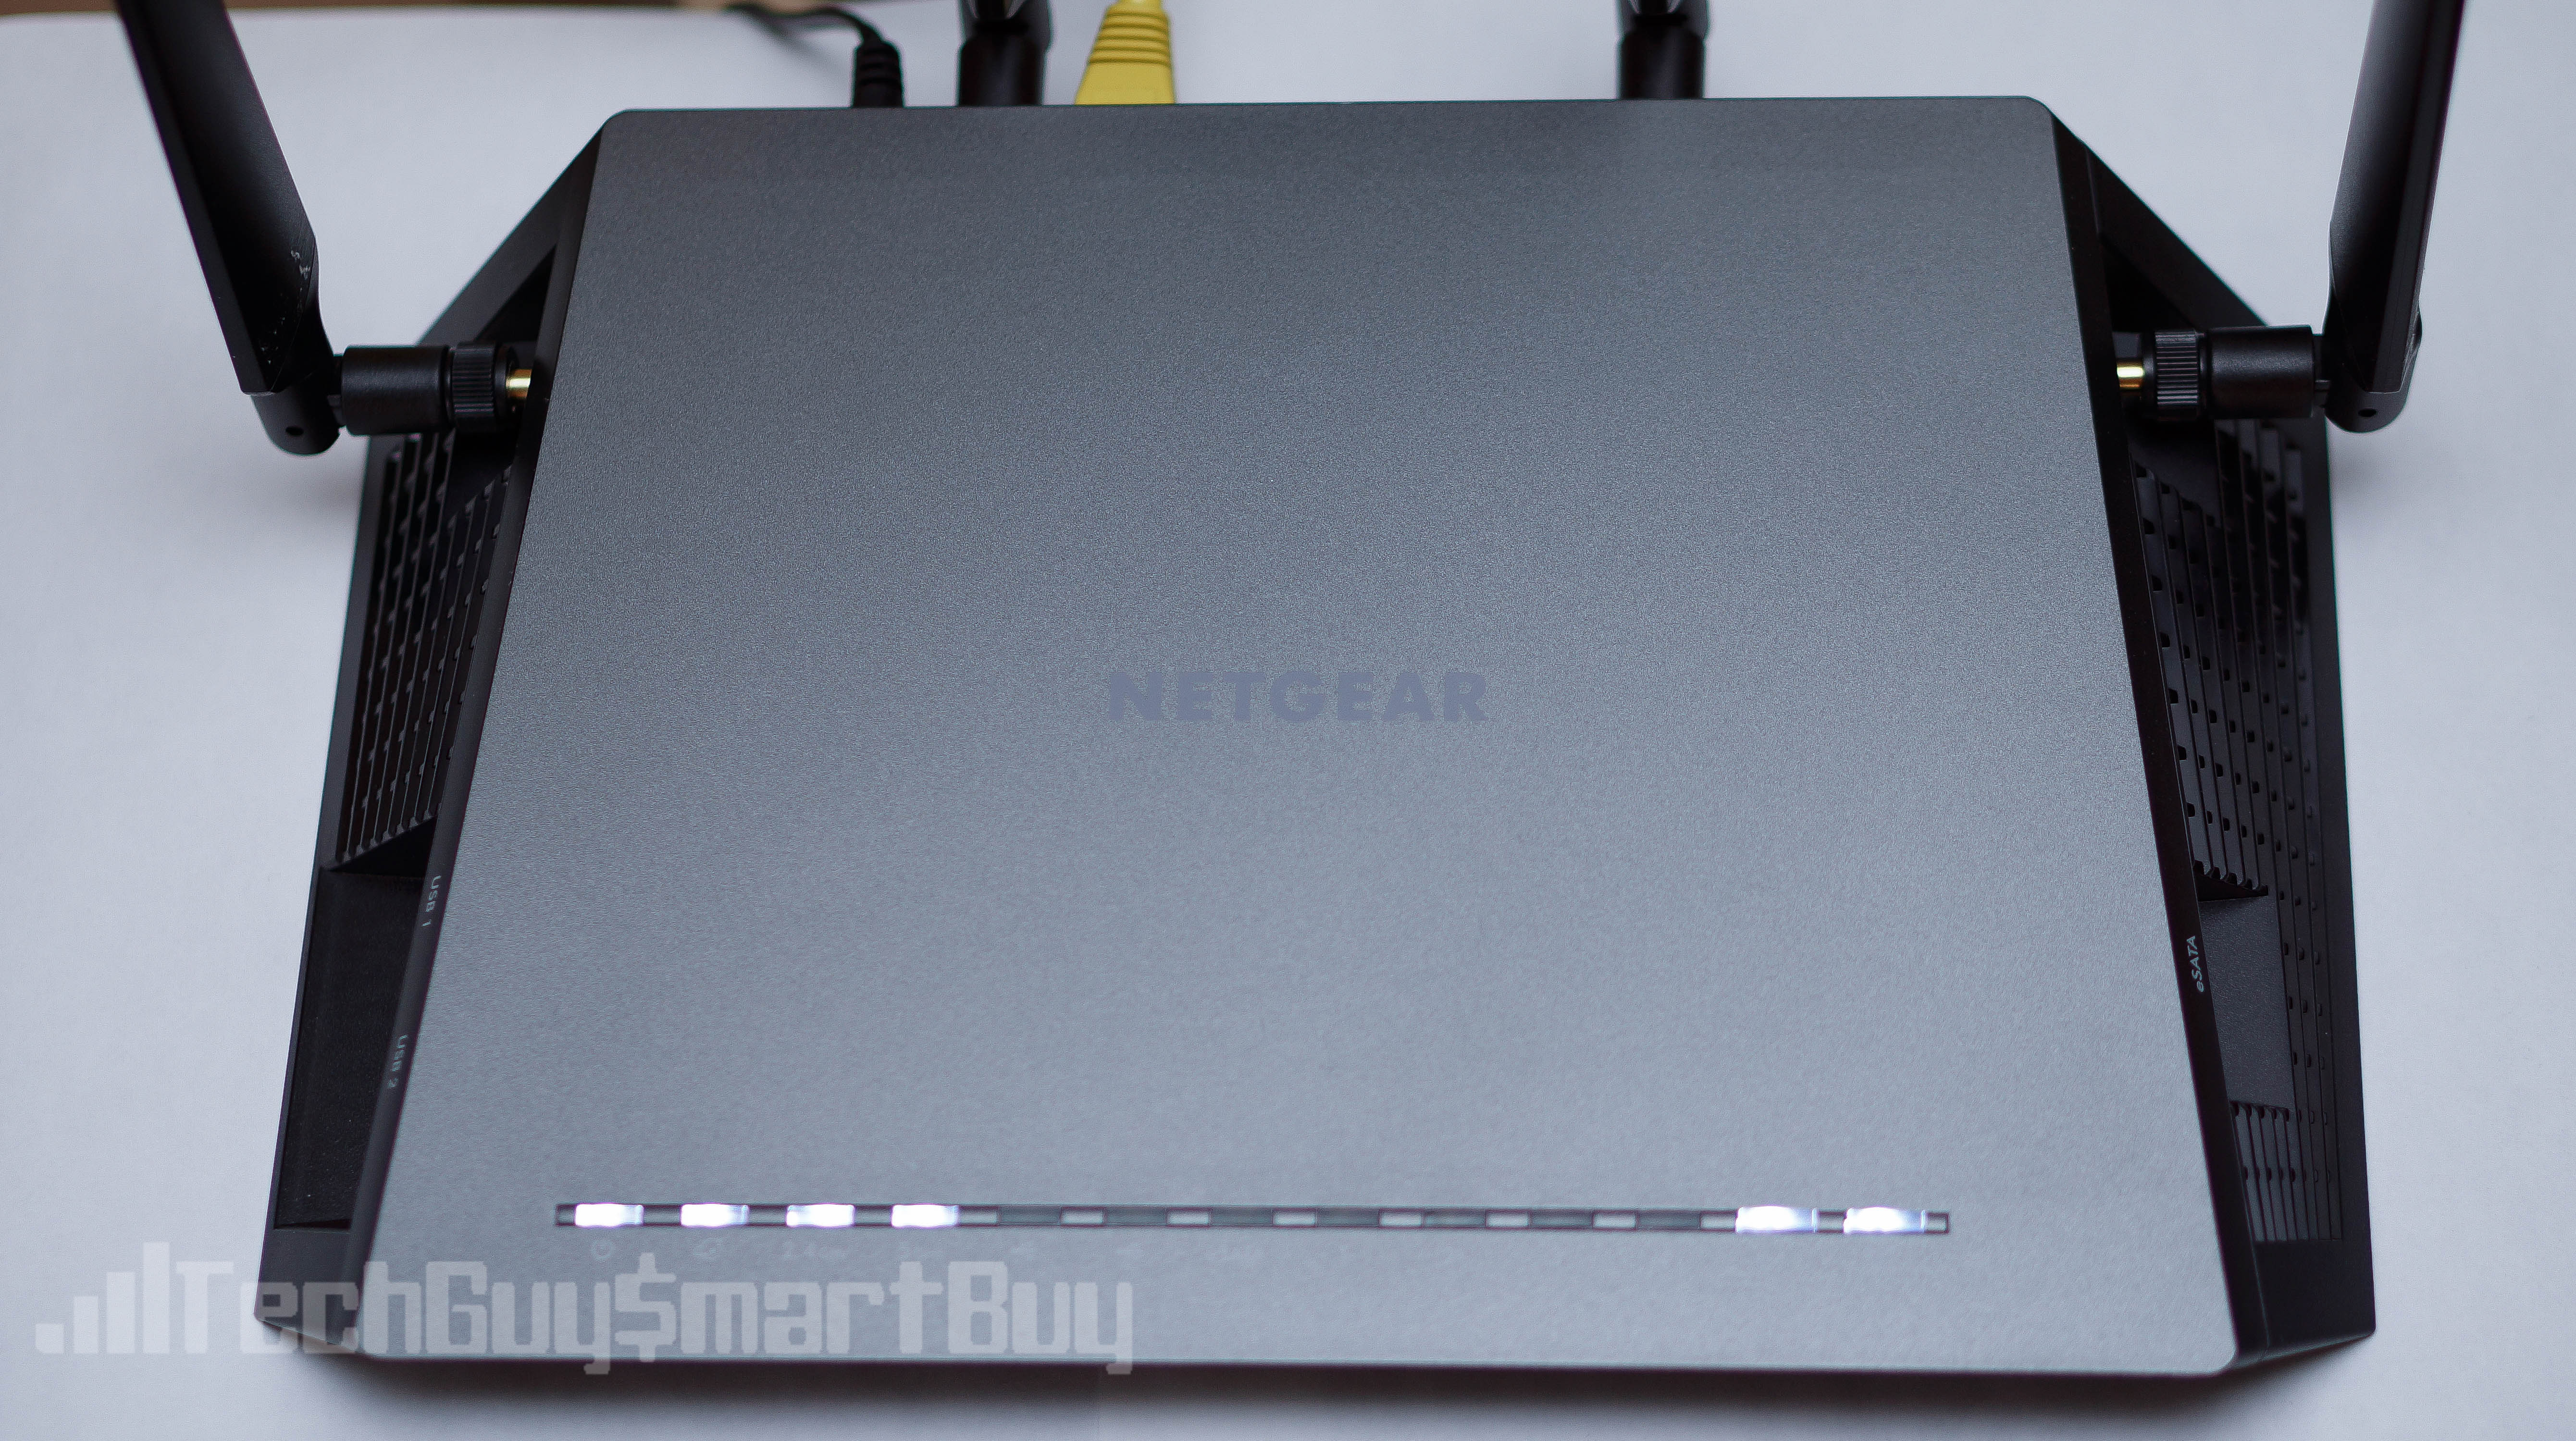 Netgear Nighthawk X4S Router Review